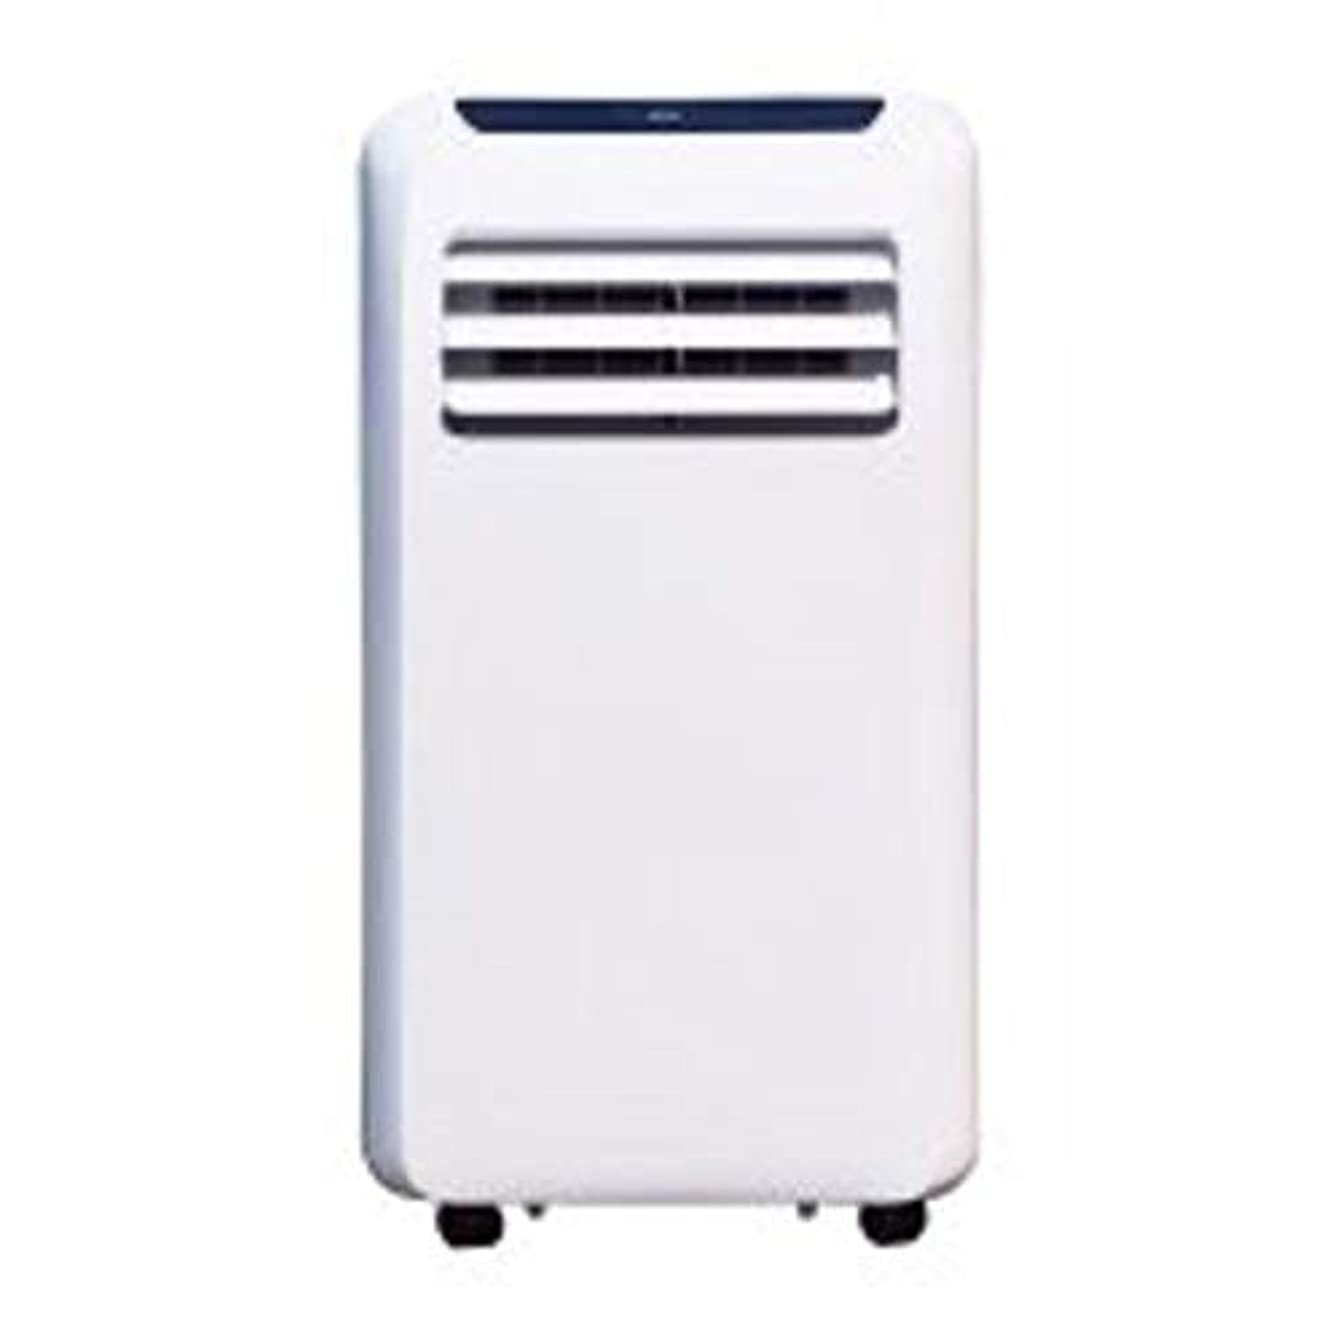 CCH Products YPF2-12C-FC 12000 BTU 3 in 1 New Compact Design Portable Air Conditioner